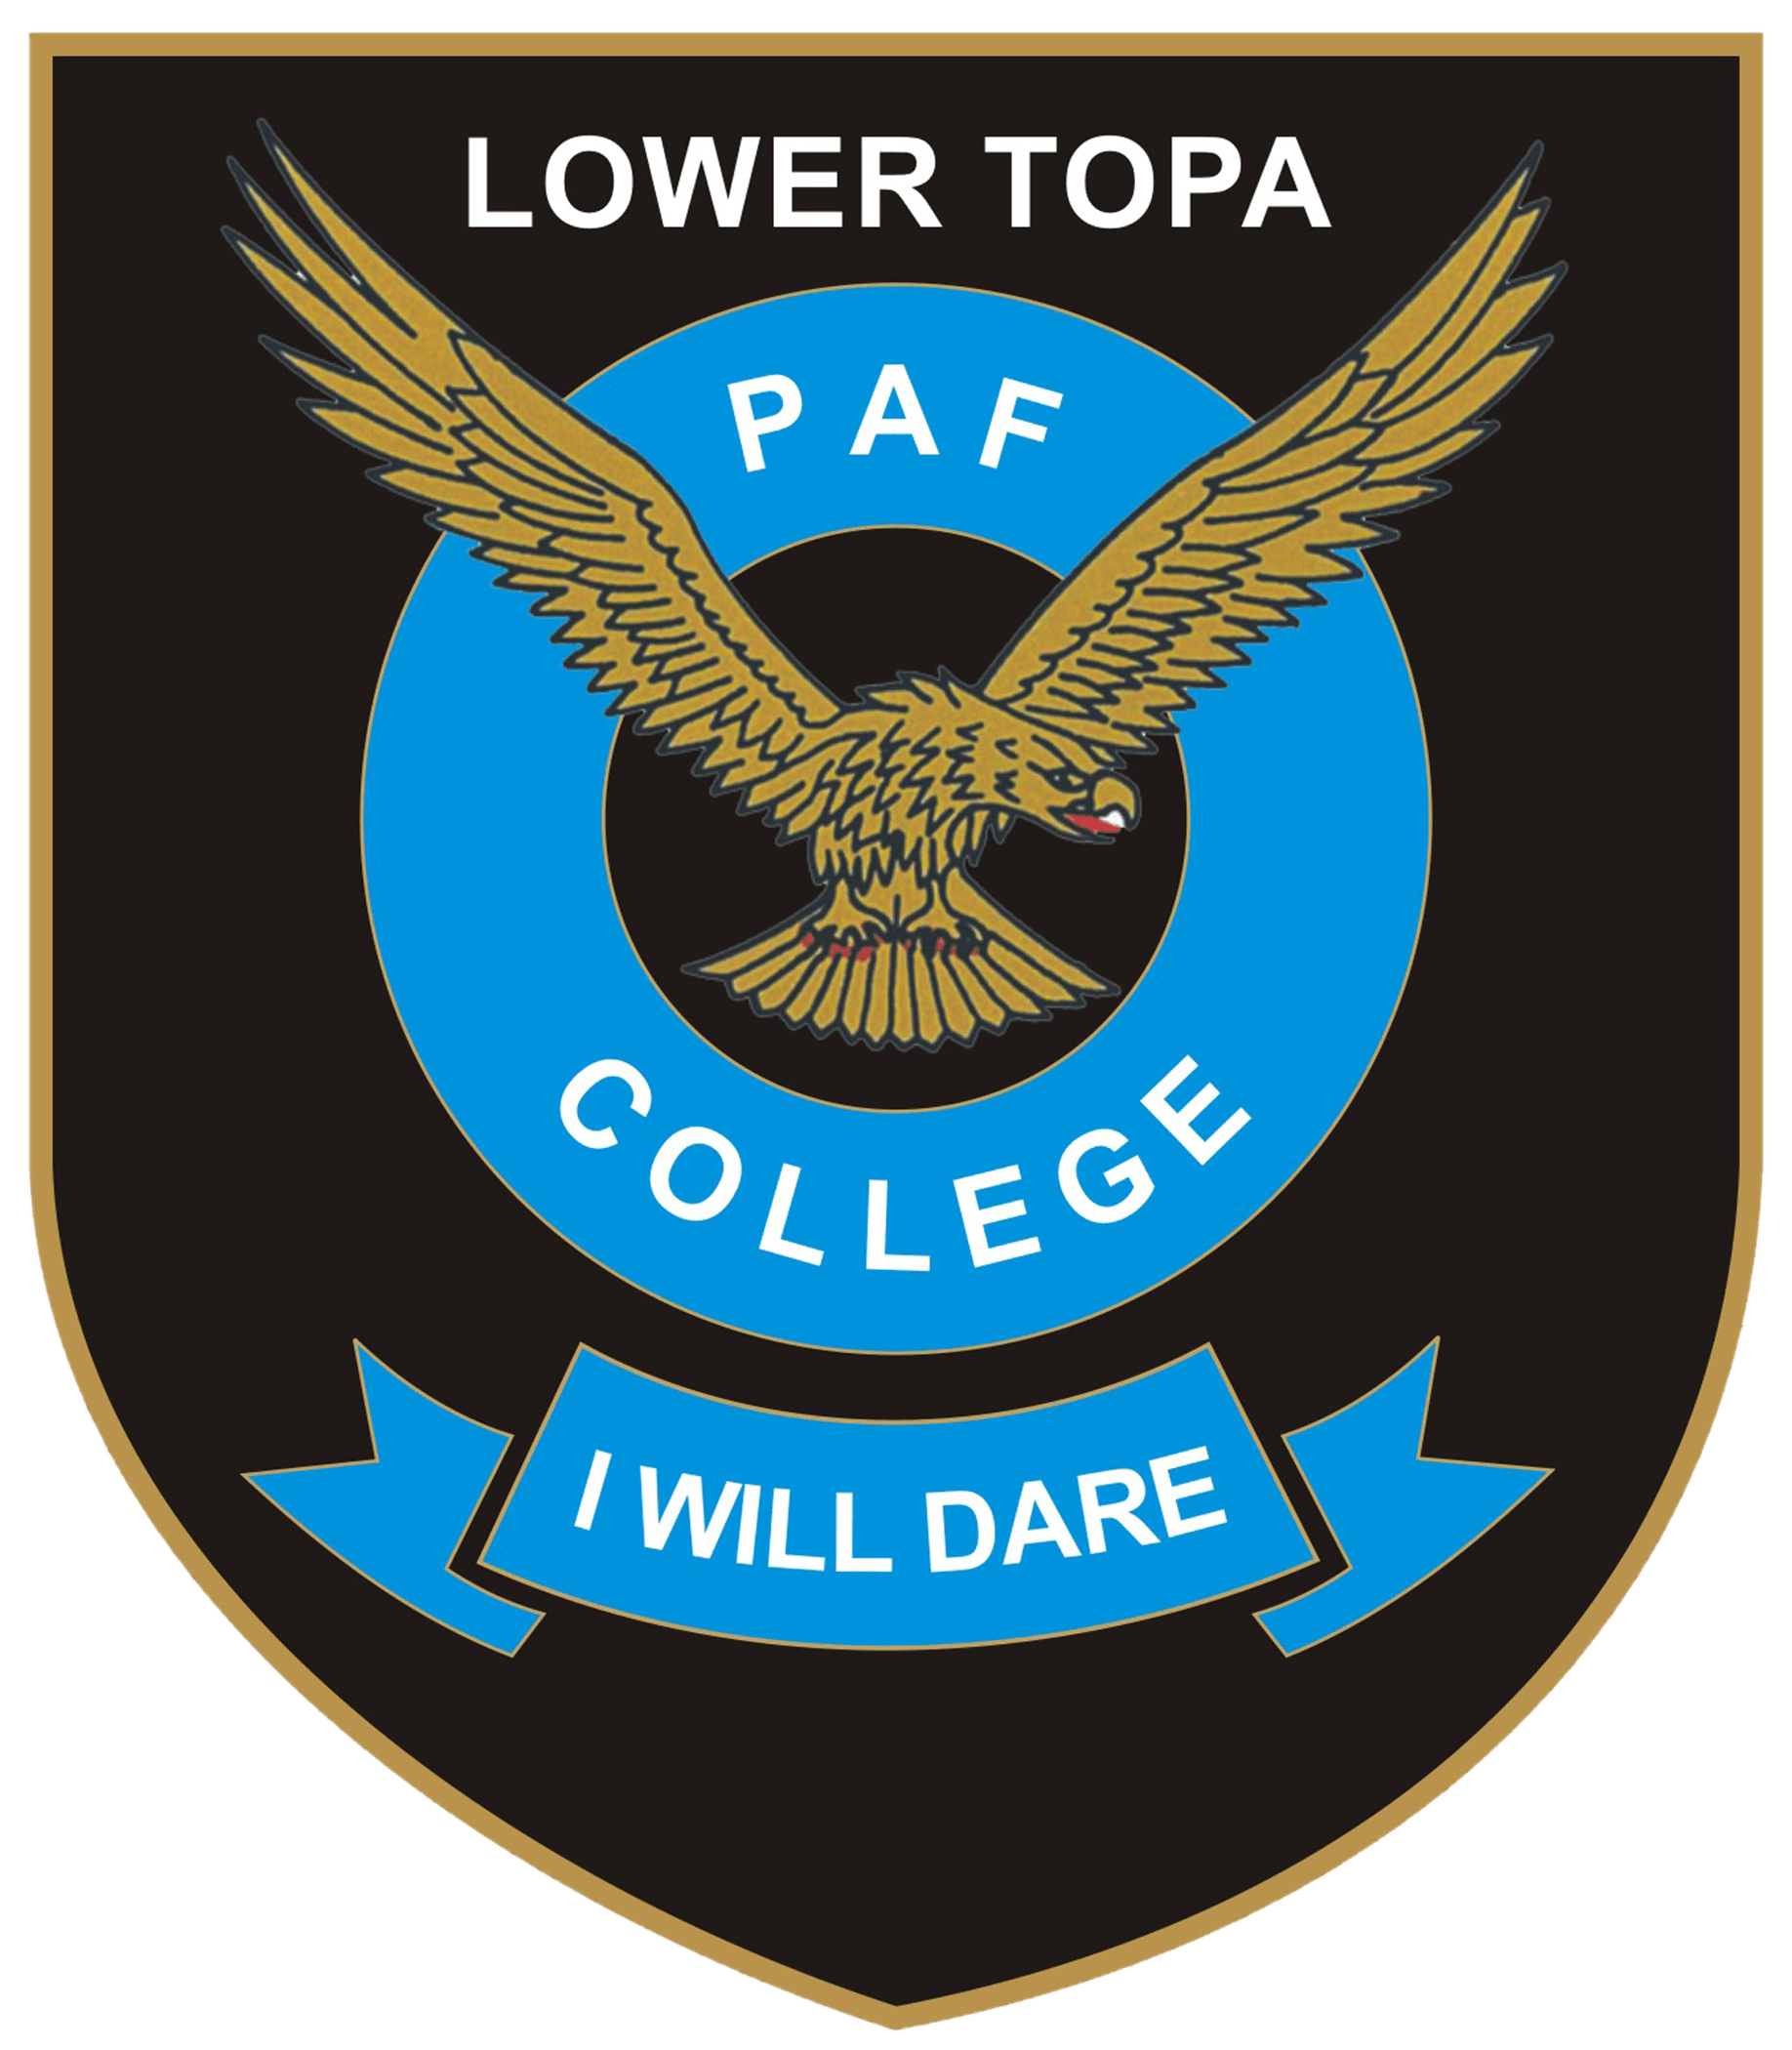 PAF College Lower Topa Murree Class VIII Admissions 2022